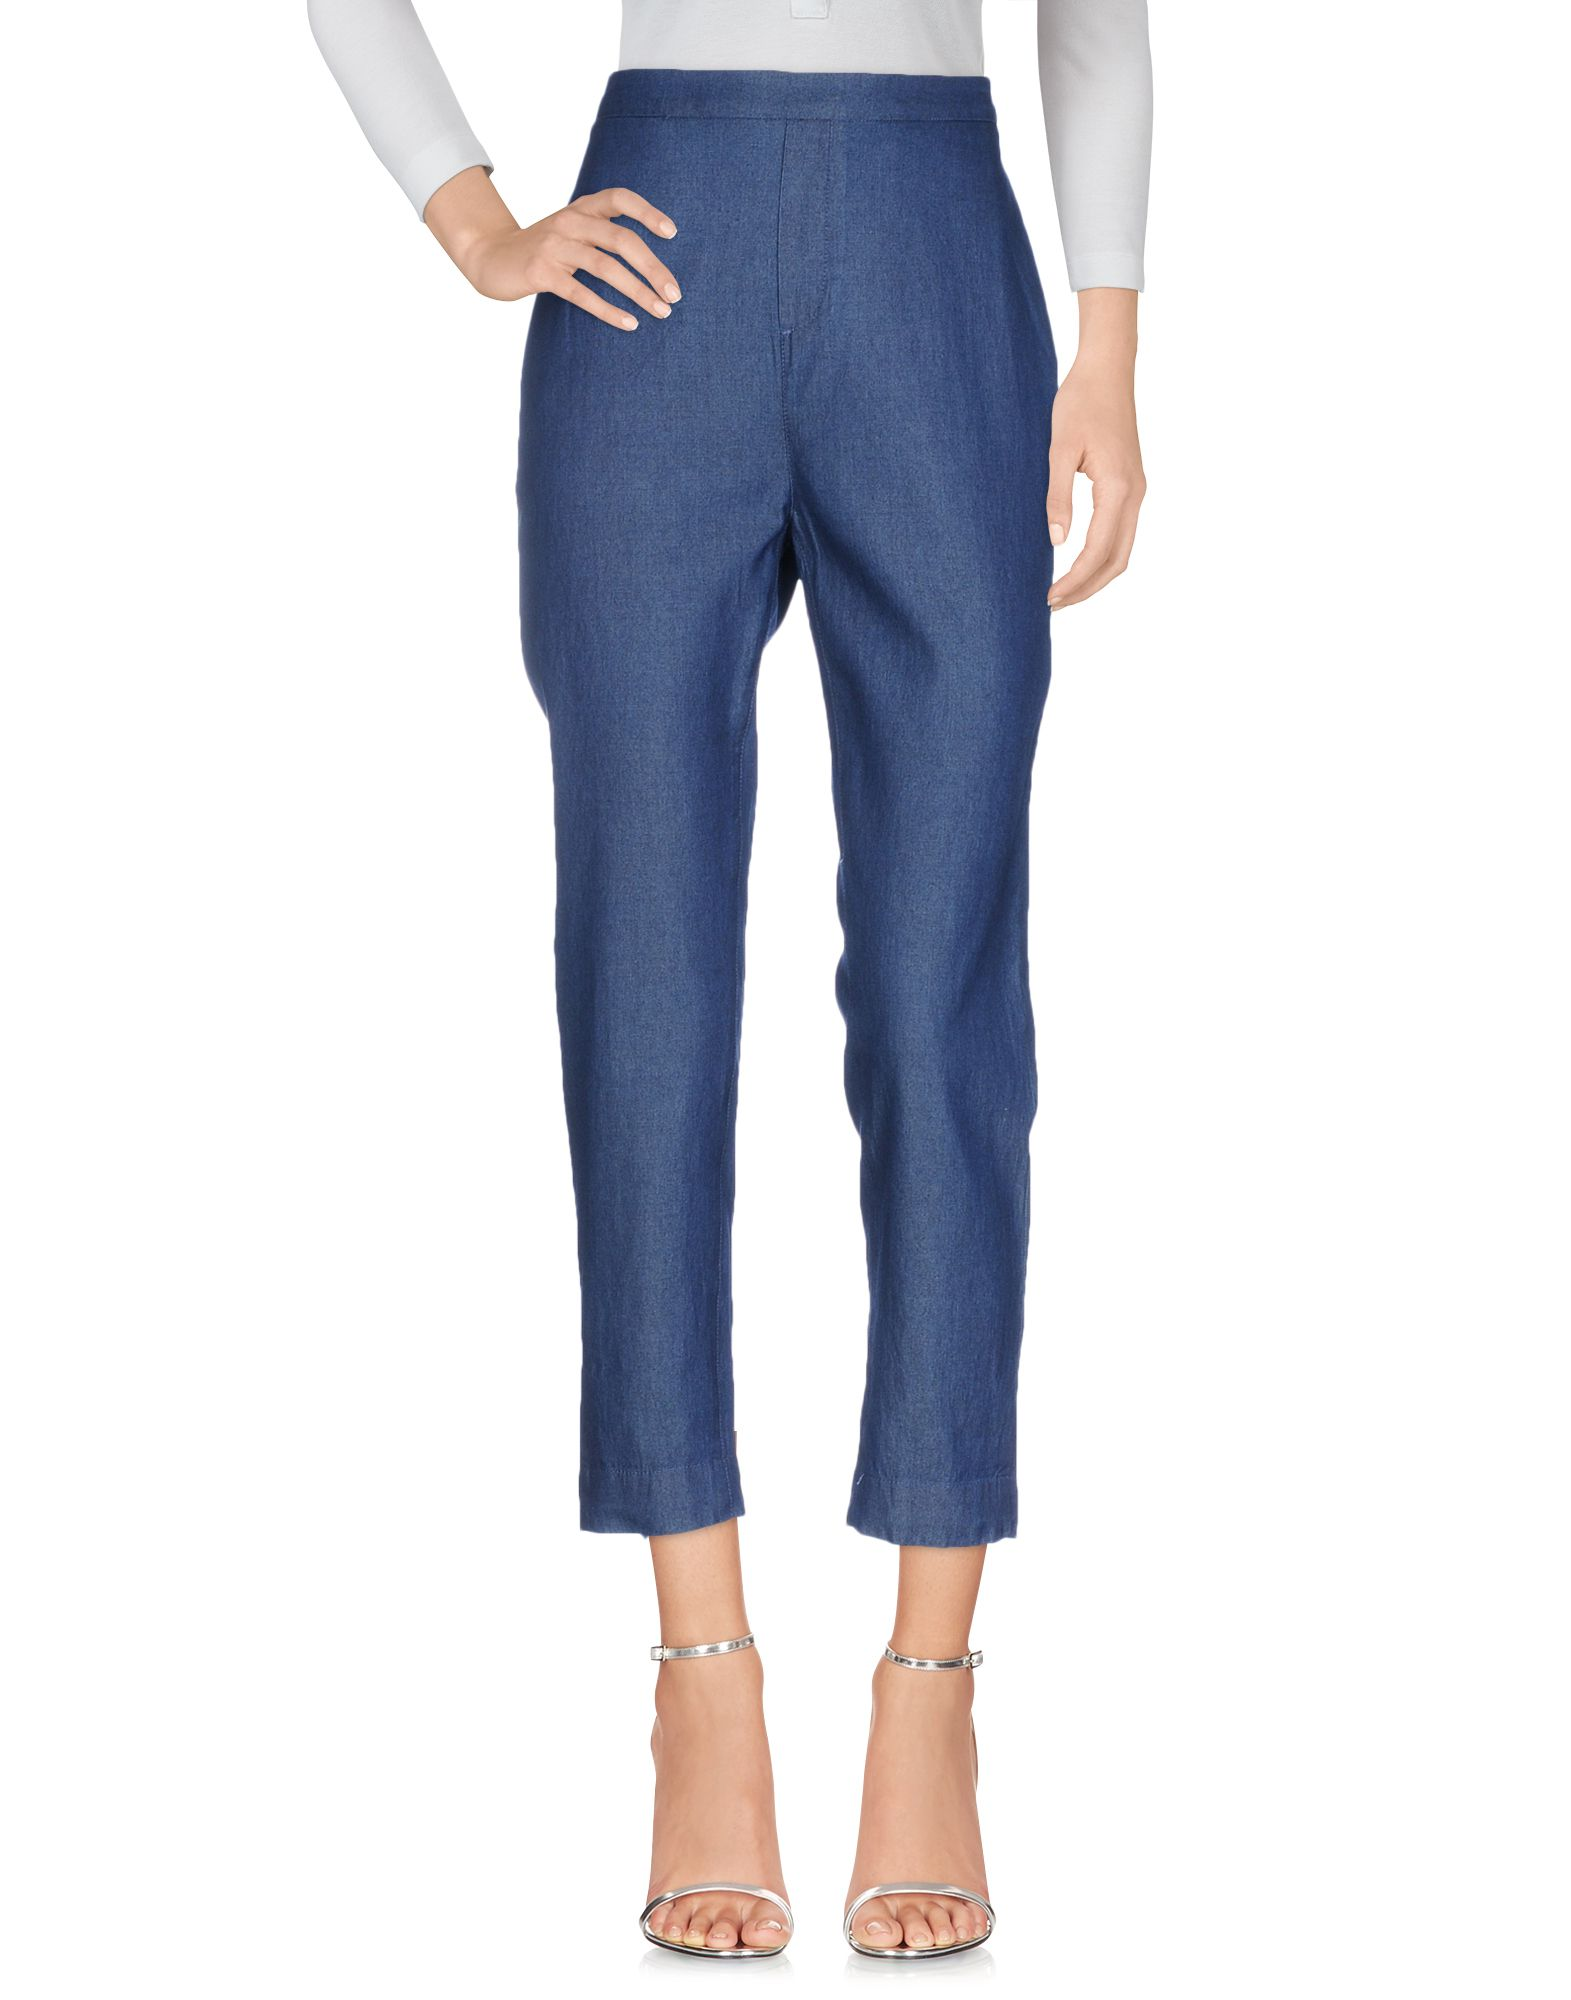 DENIM - Denim trousers Sibel Saral Sale Cost Footlocker Pictures Discount Store Find Great jXUeT